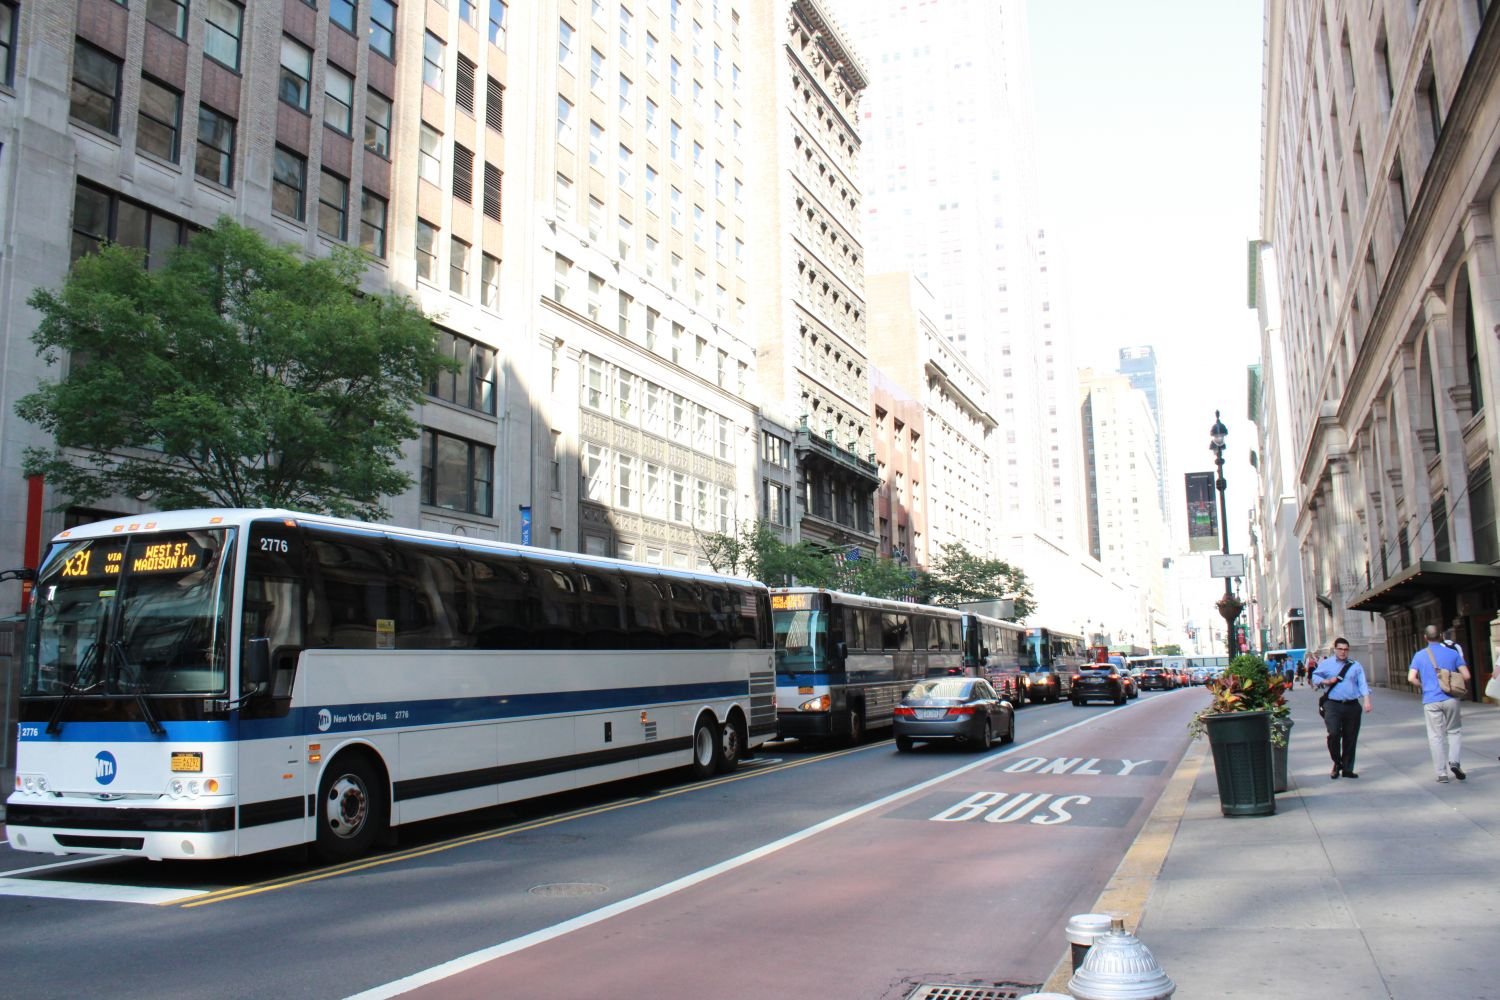 NYCT Bus 2776 on the X31